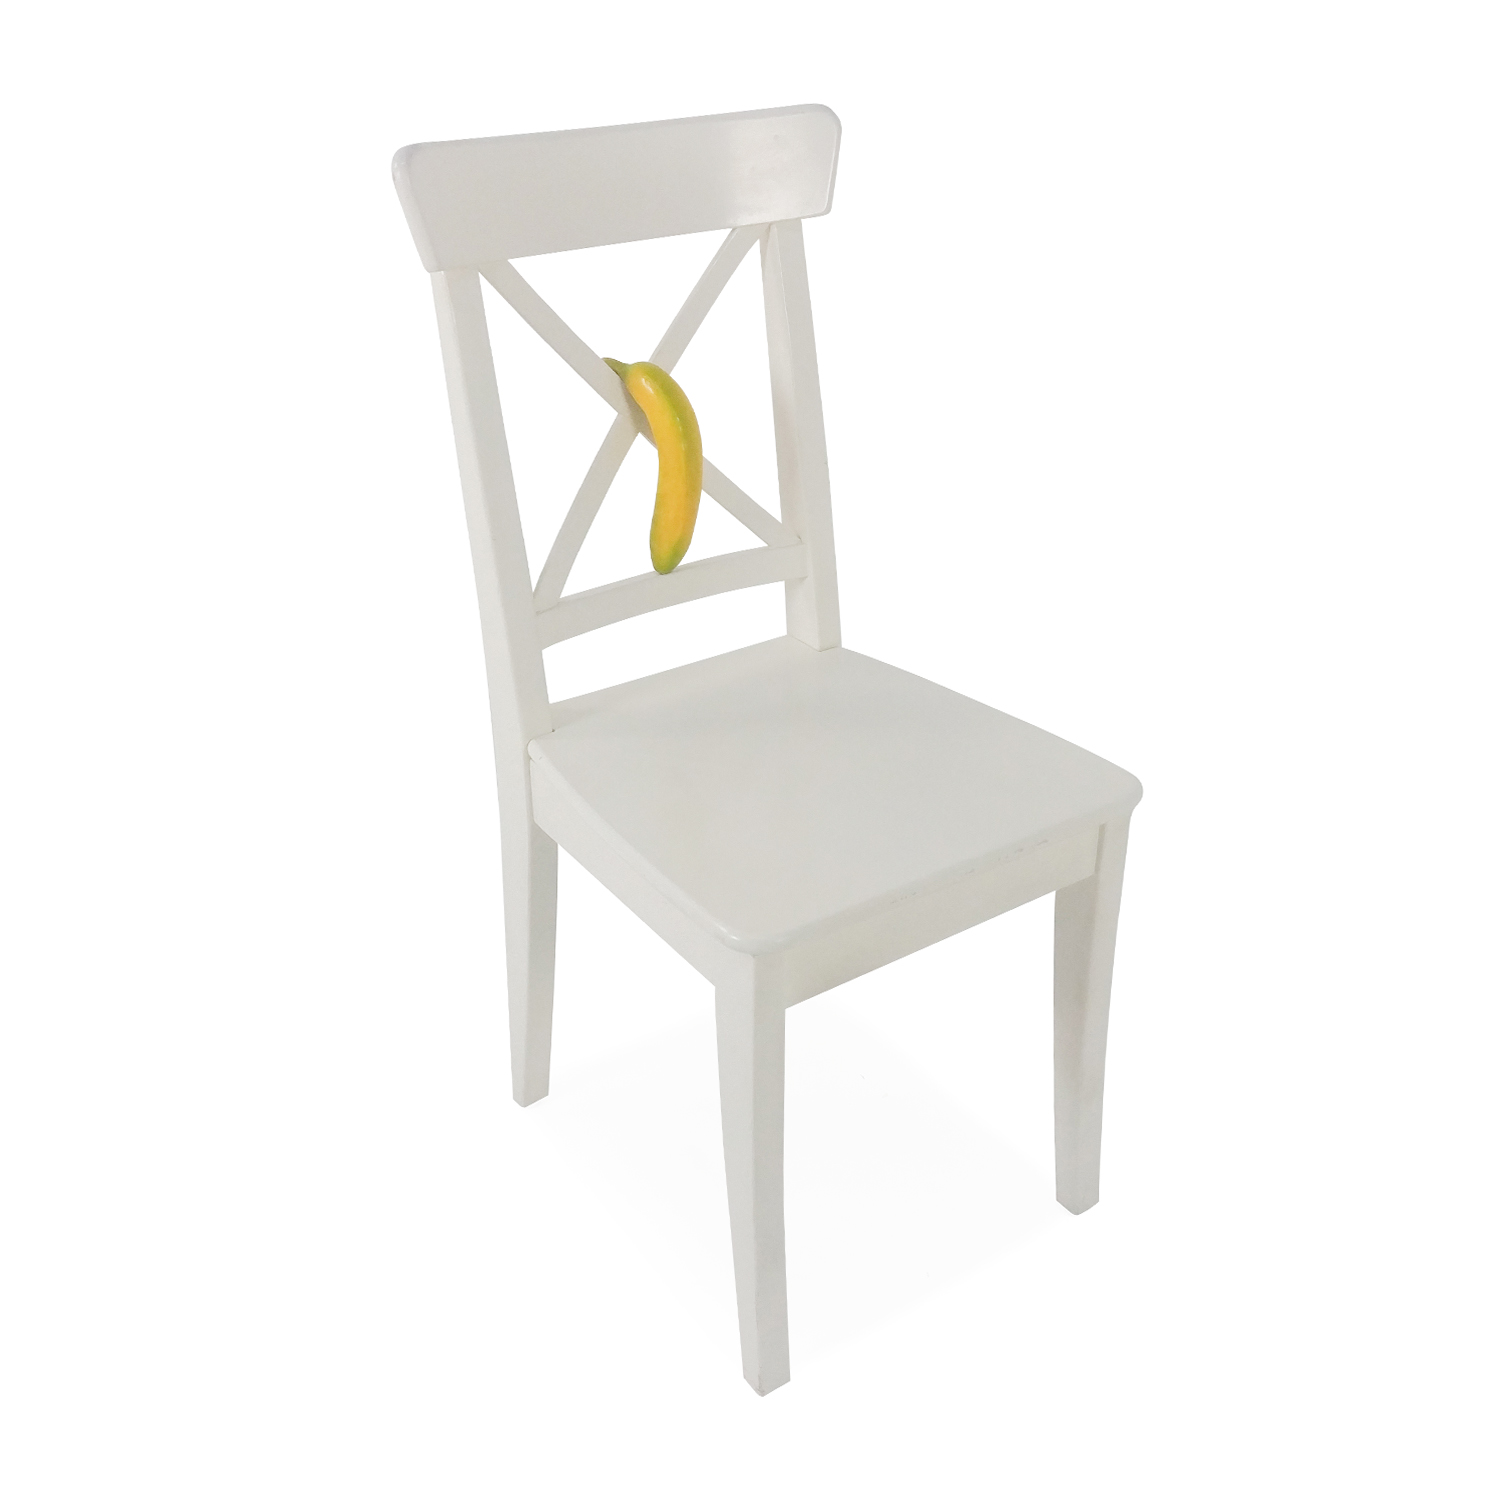 50 Off Ikea Ingolf White Dining Chair Chairs